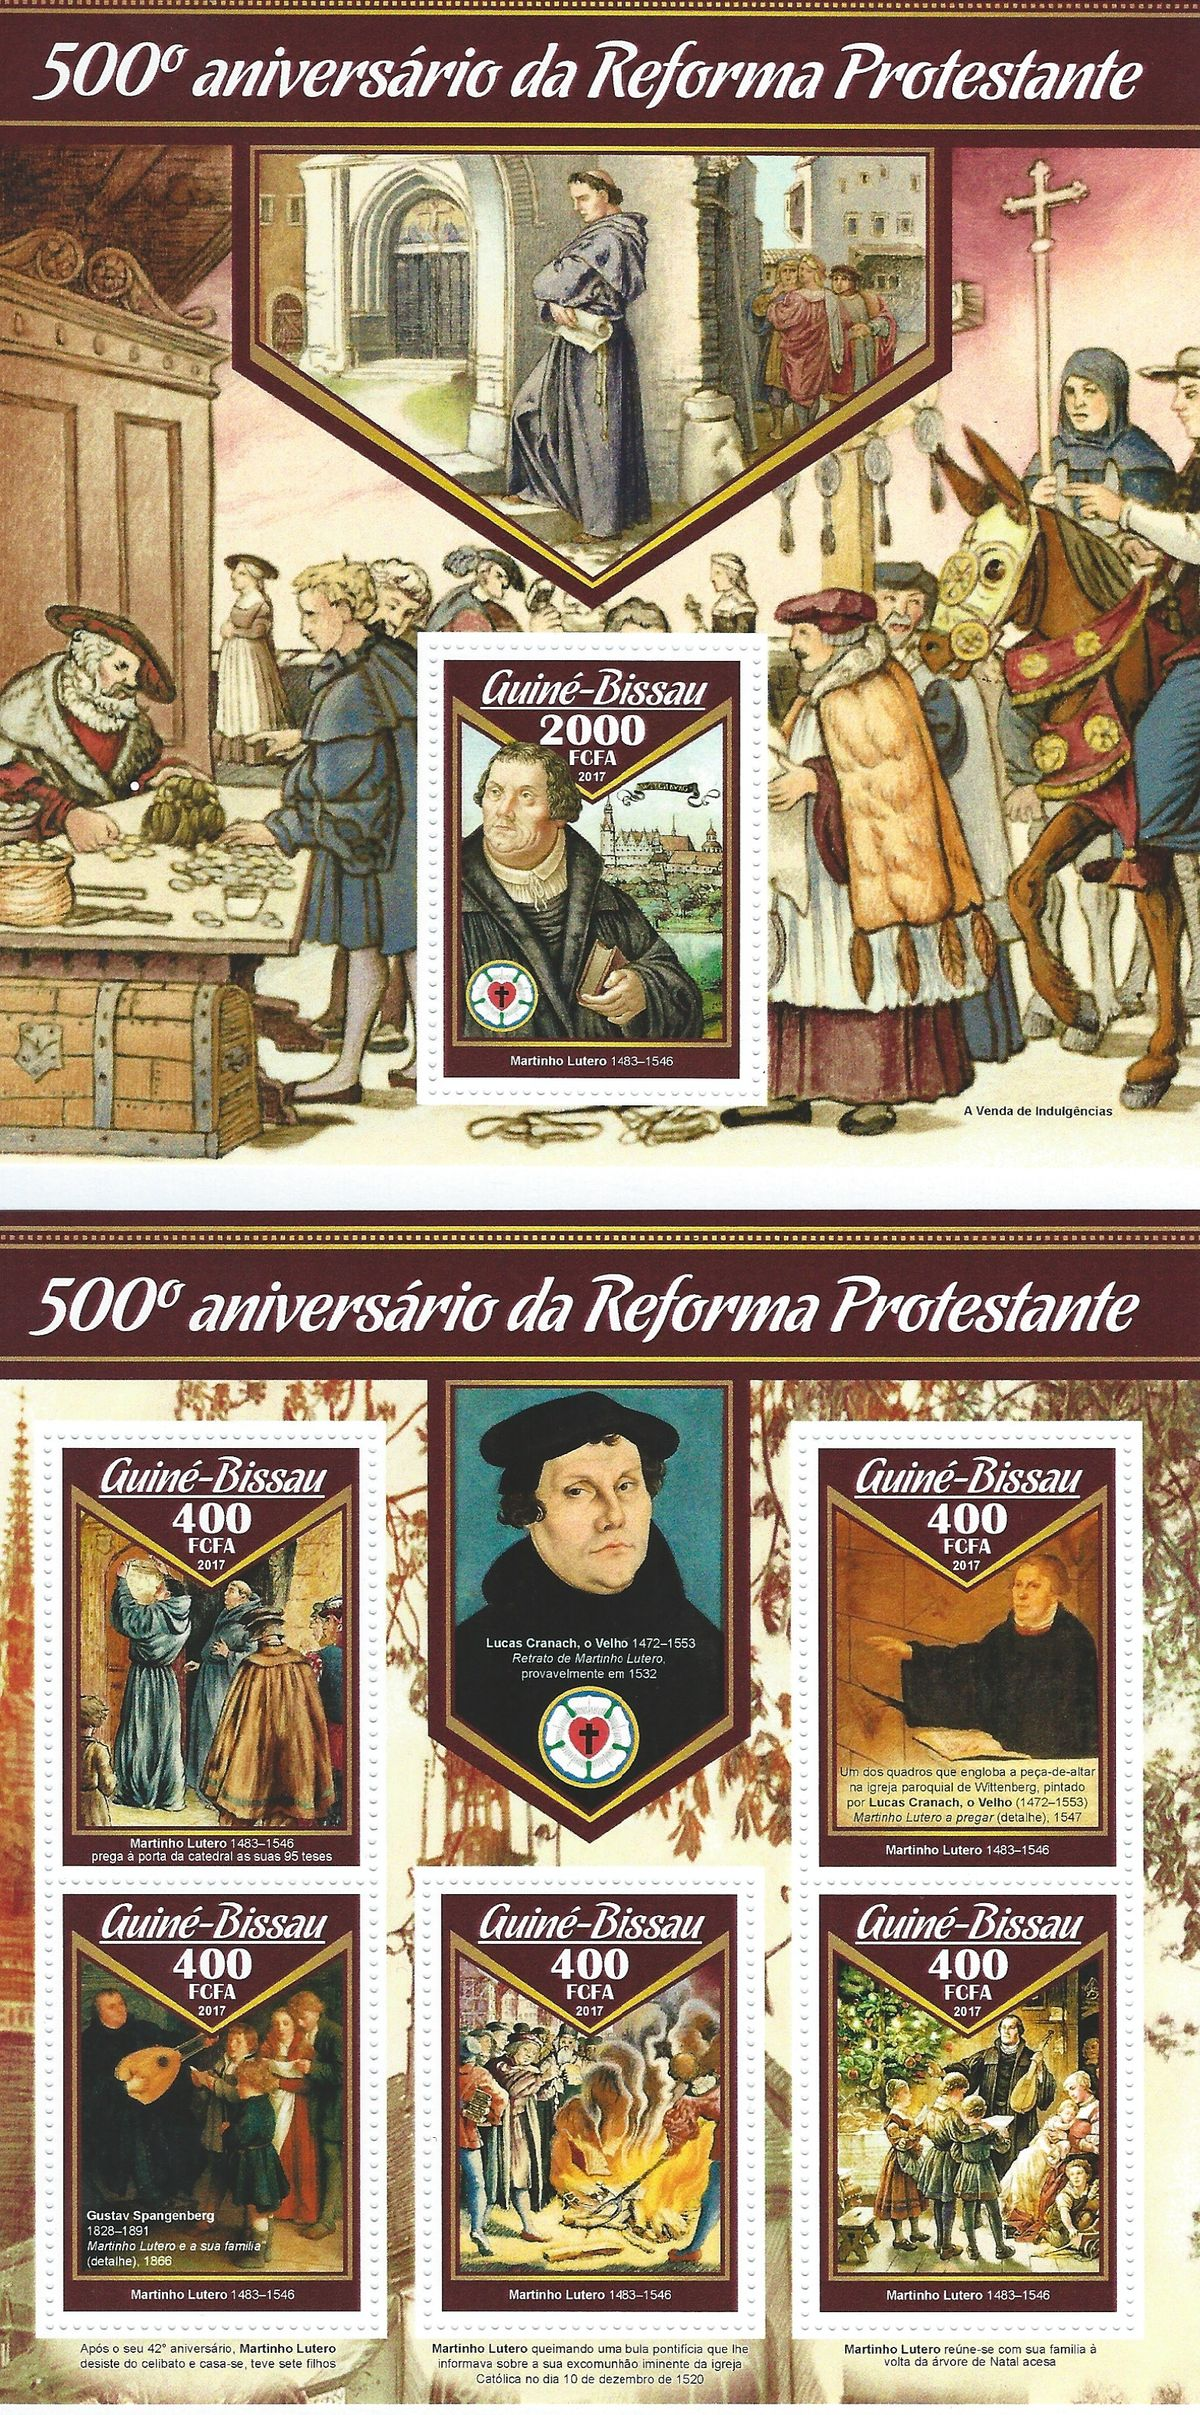 Guine Bissau, Martin Luther, Luther Briefmarken, Blocksatz, 2017, Reformation